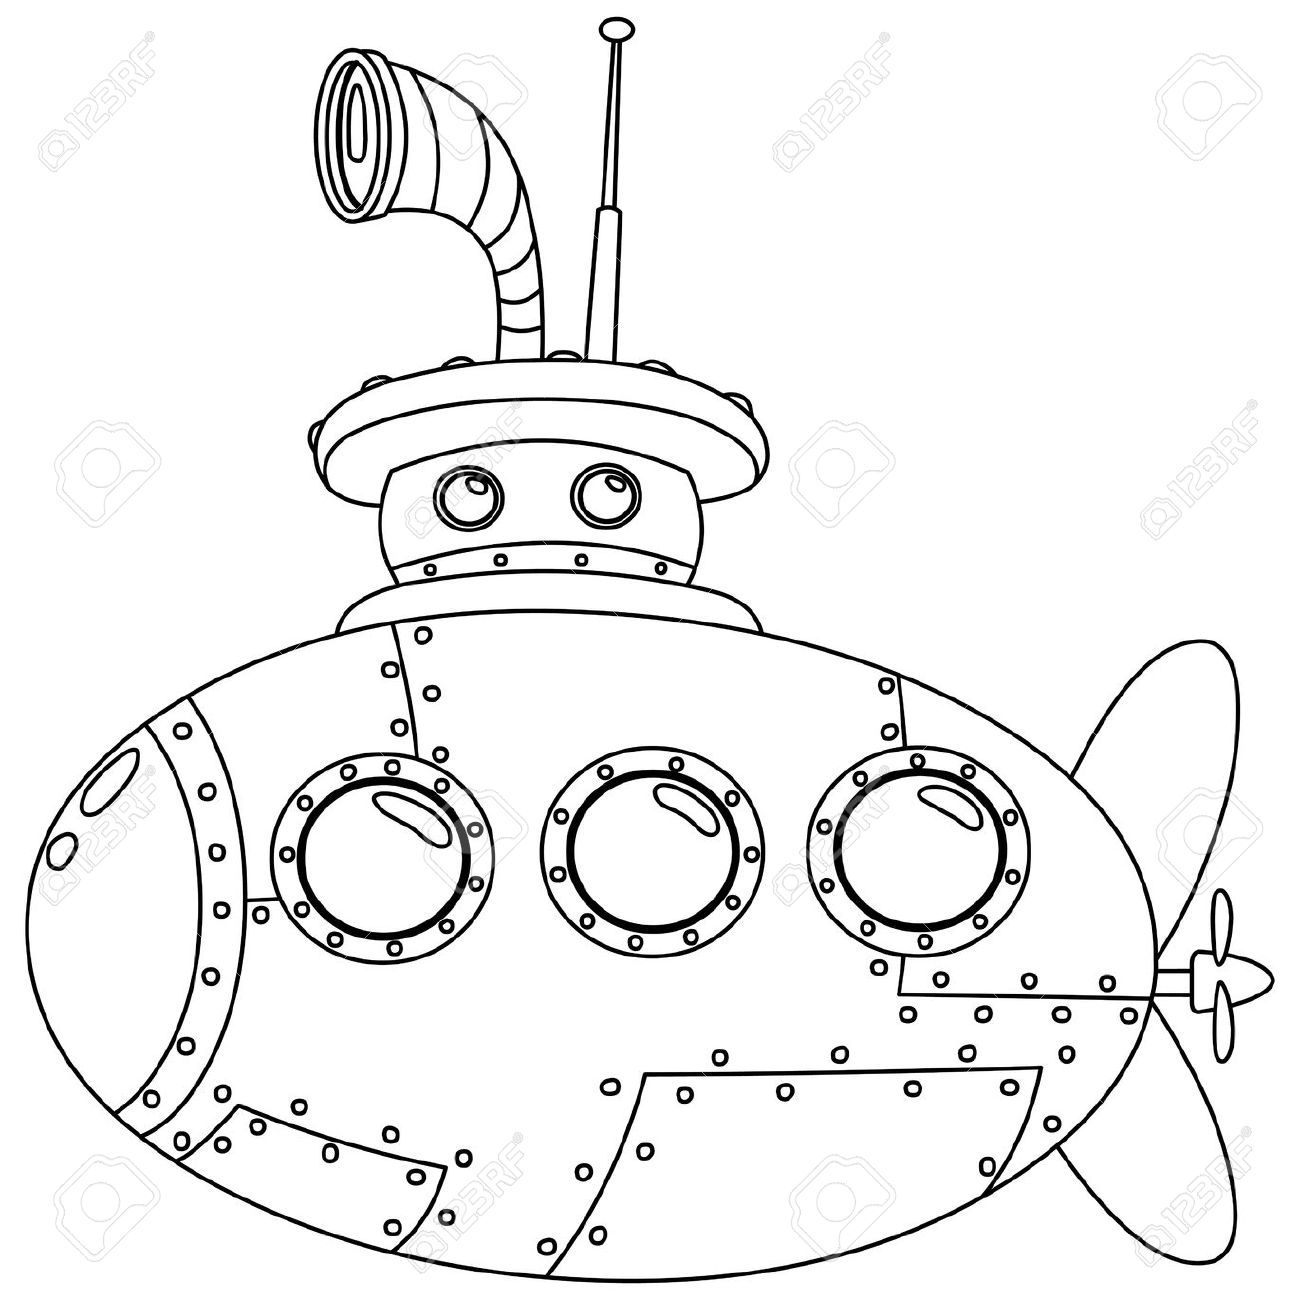 nautical coloring pages for adults - photo#33